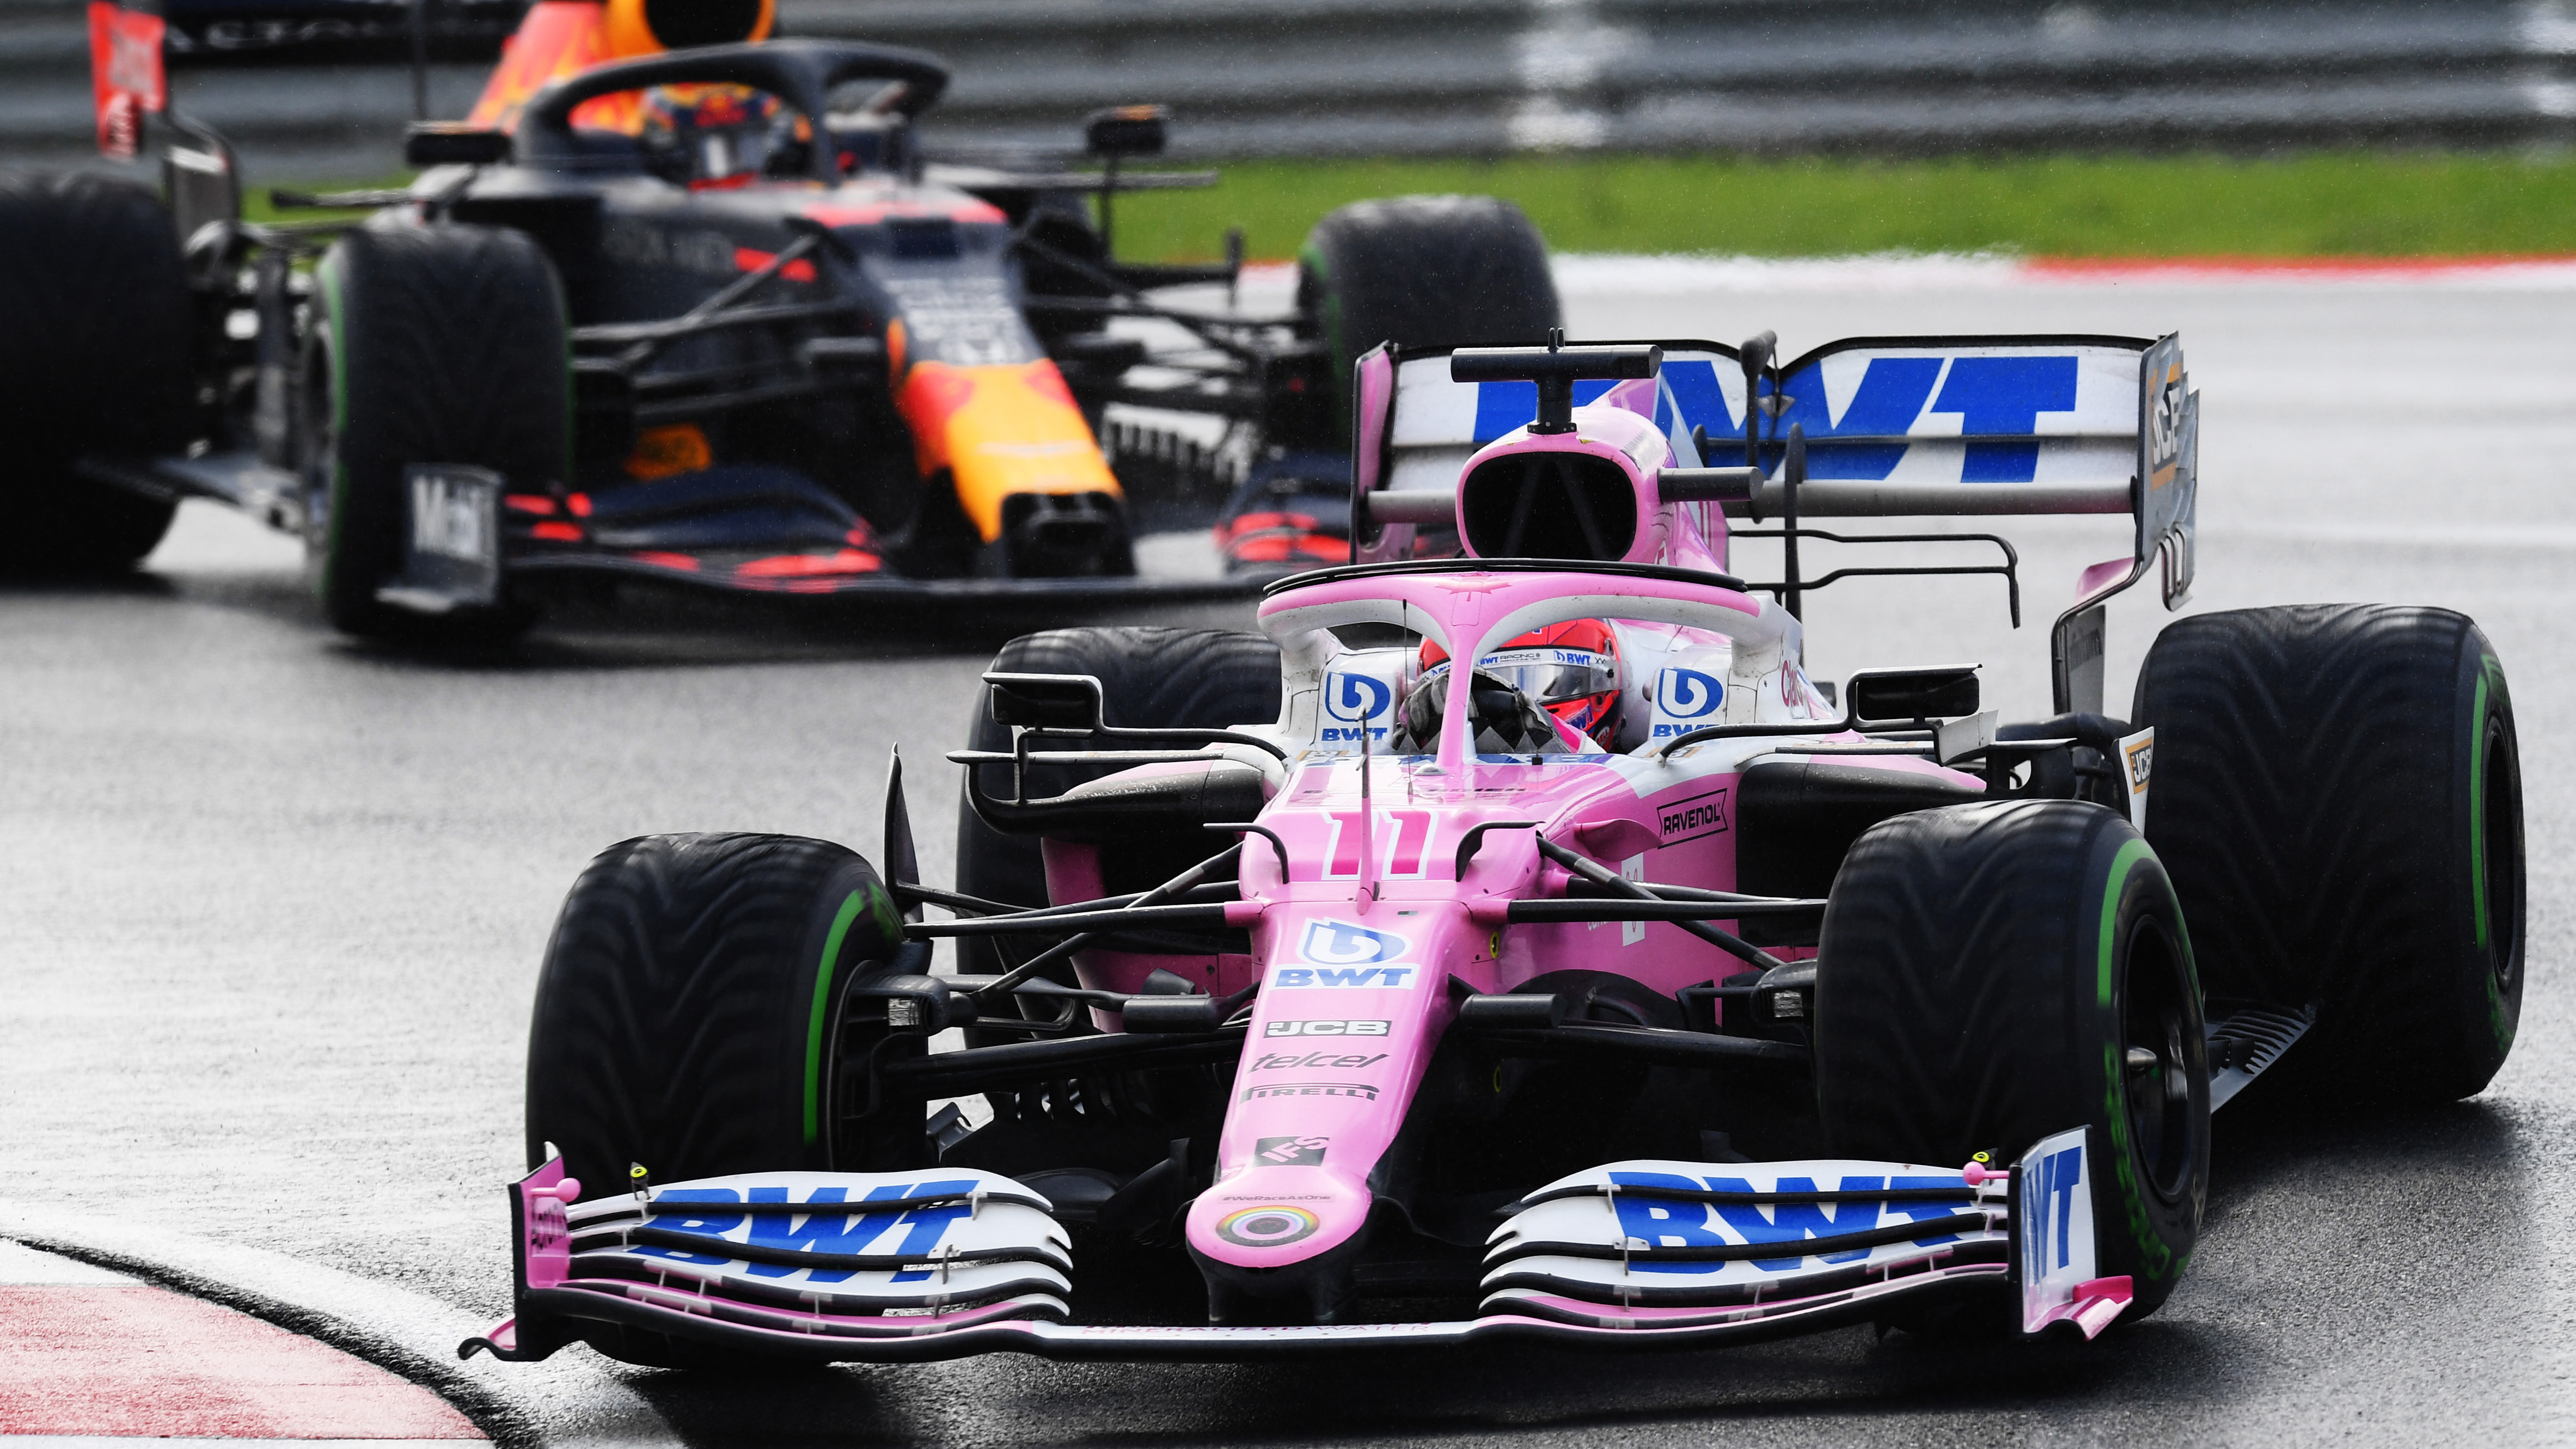 Driver Market Sergio Perez Says It S F1 Or Bust For Him In 2021 As He Waits For Red Bull Decision Formula 1